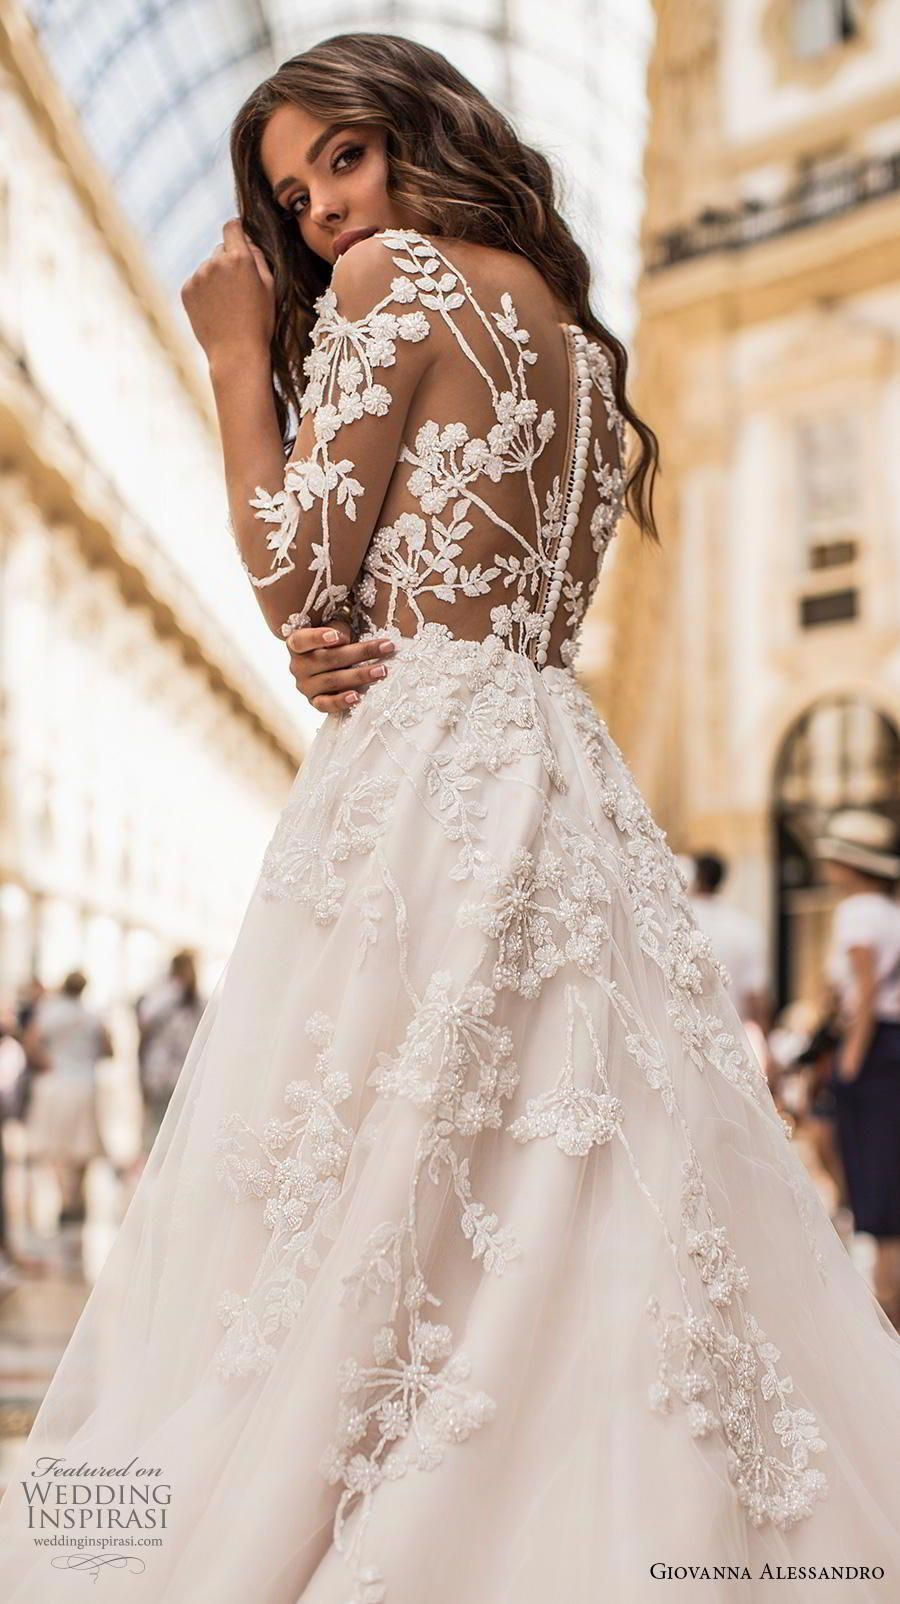 How To Make A Wedding Dress In 2020 | Ballkleid Hochzeit